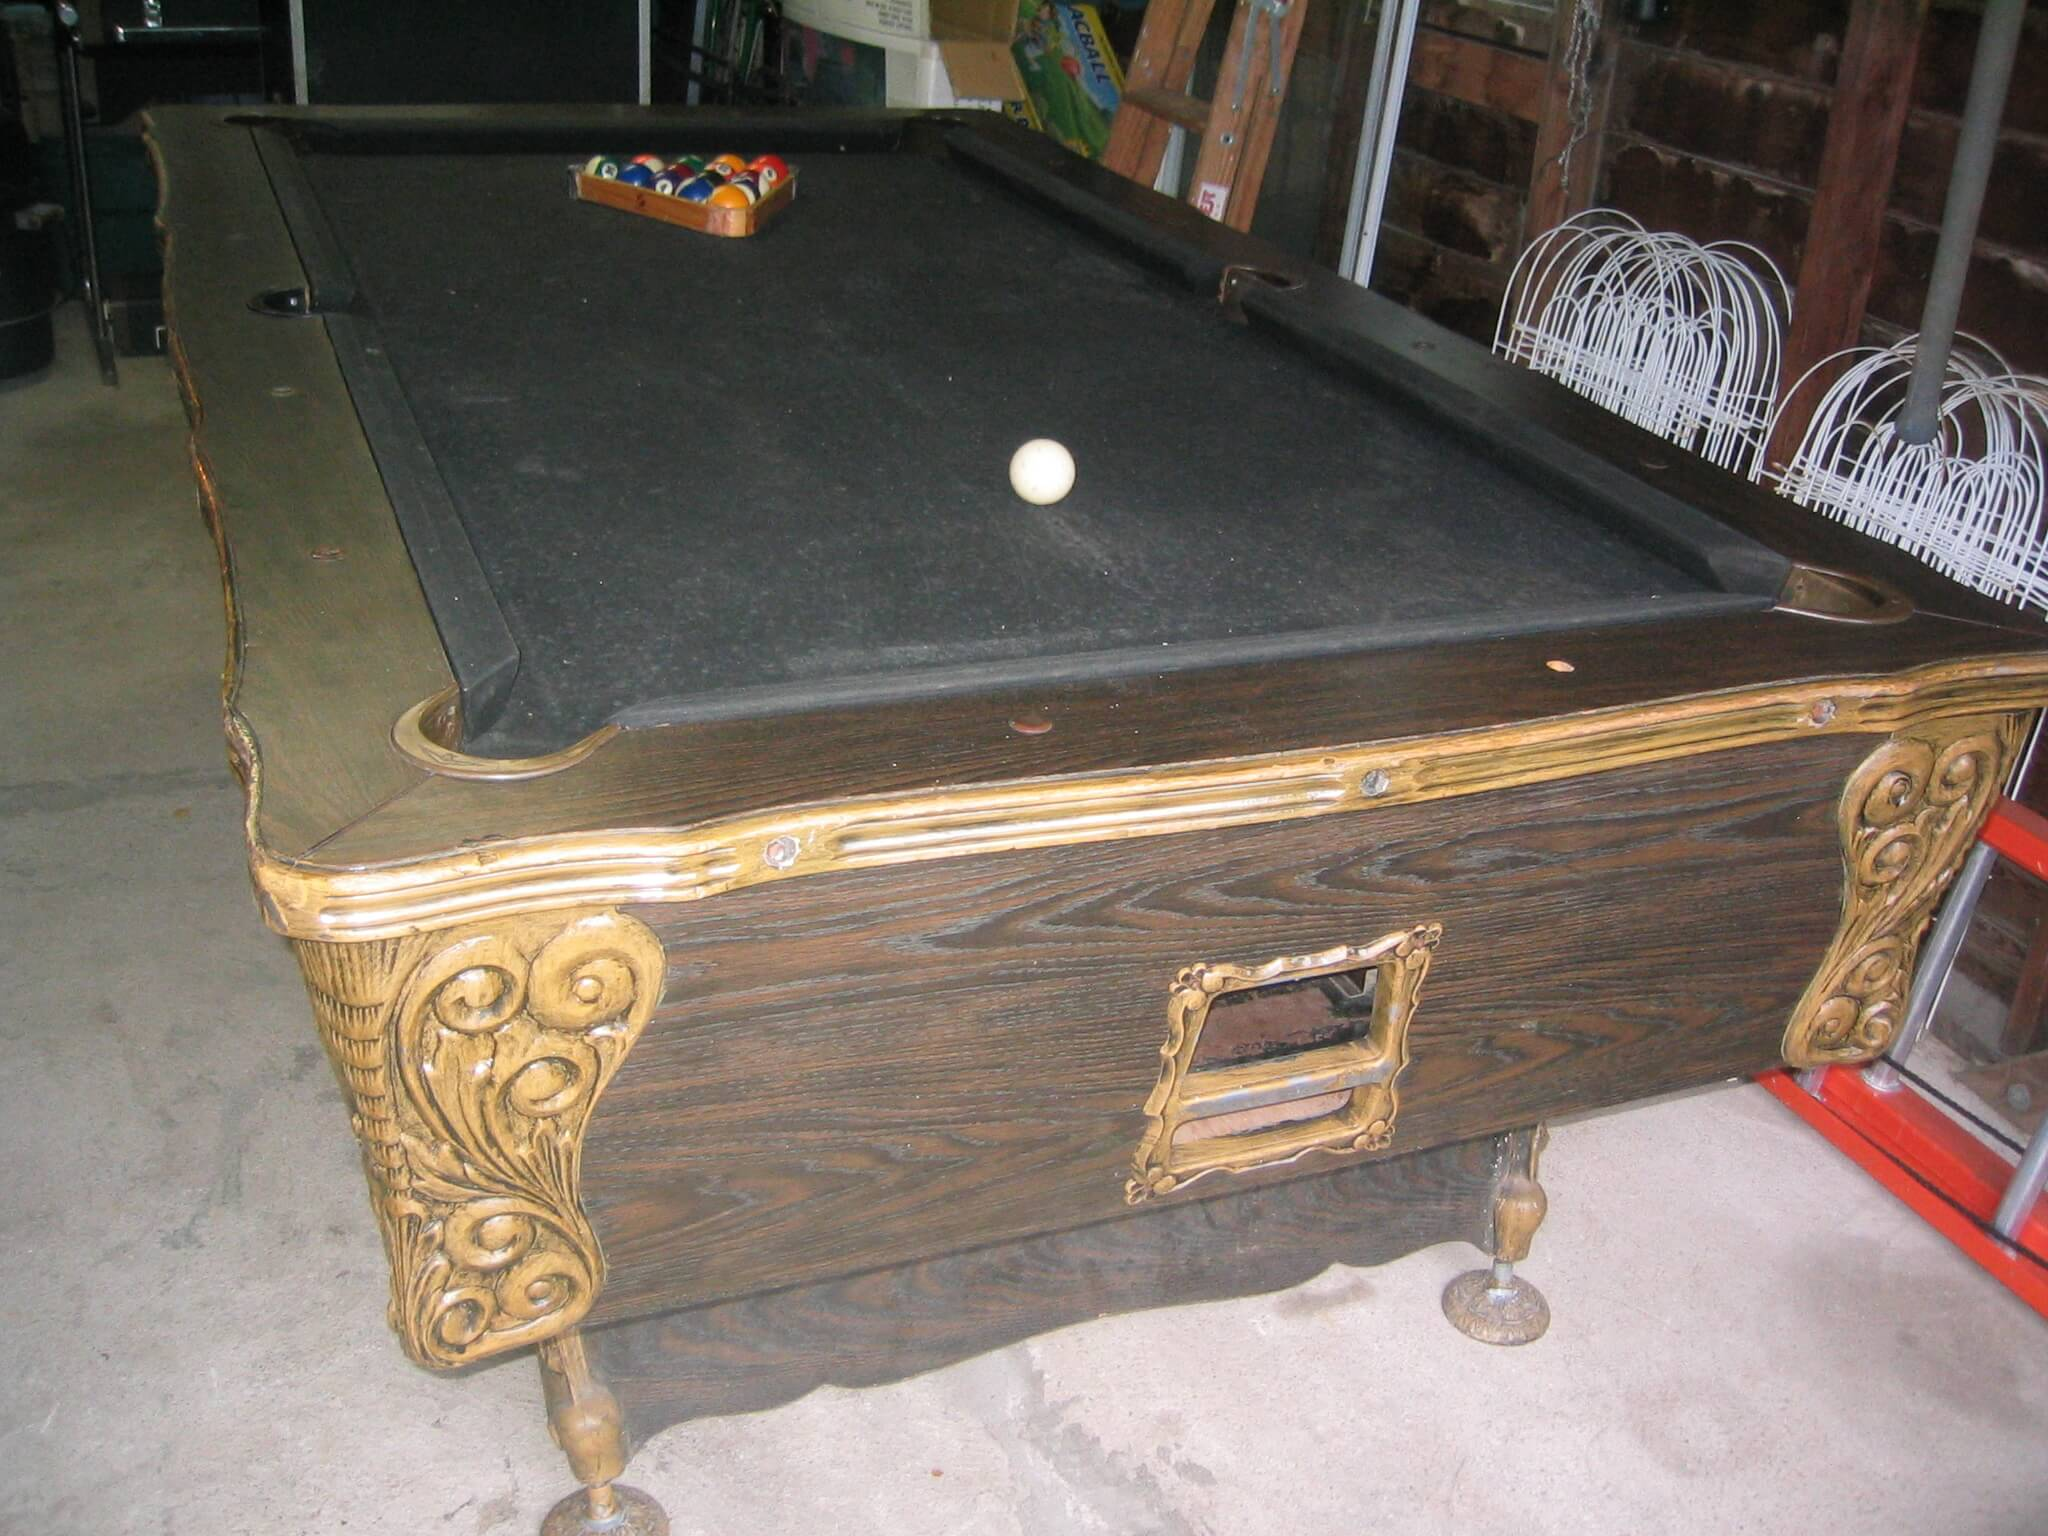 irving kaye coinop pool table. Black Bedroom Furniture Sets. Home Design Ideas